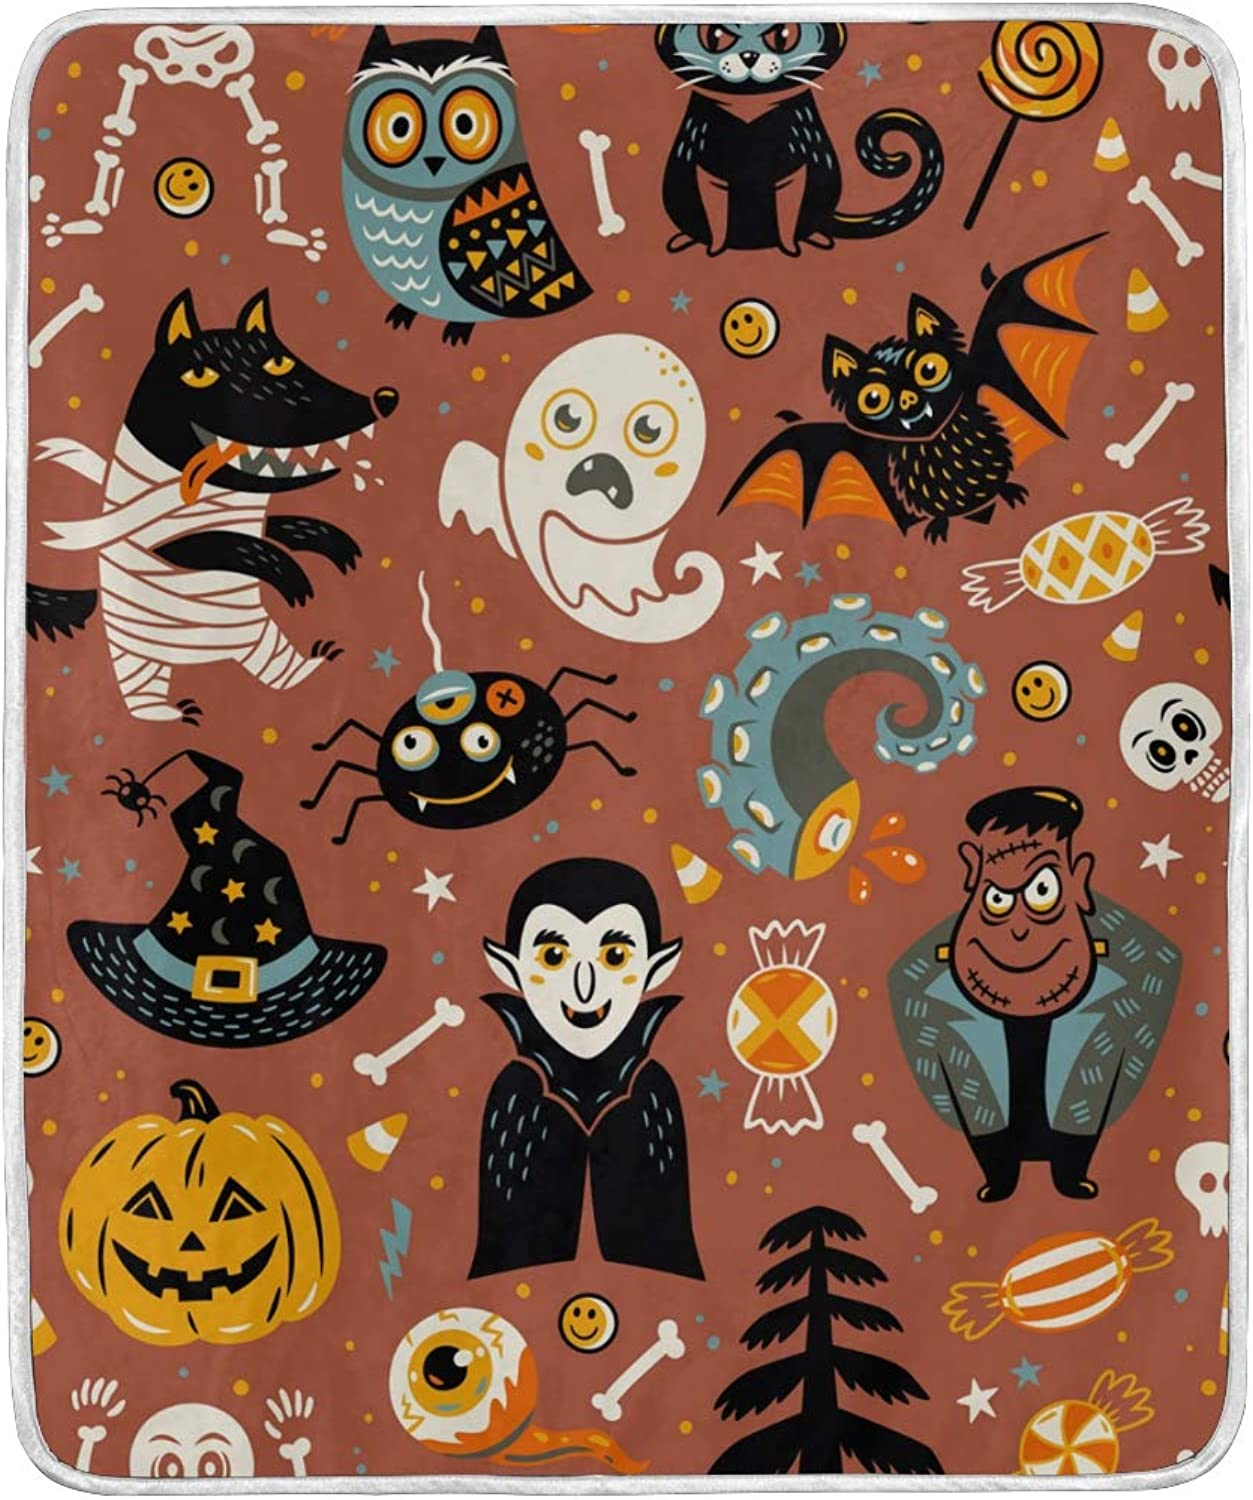 HELVOON Halloween Background Pumpkin Ghost Owl Throw Blanket Soft Warm Lightweight Blankets for Bed Couch Sofa Travelling Camping 60 x 50 Inch